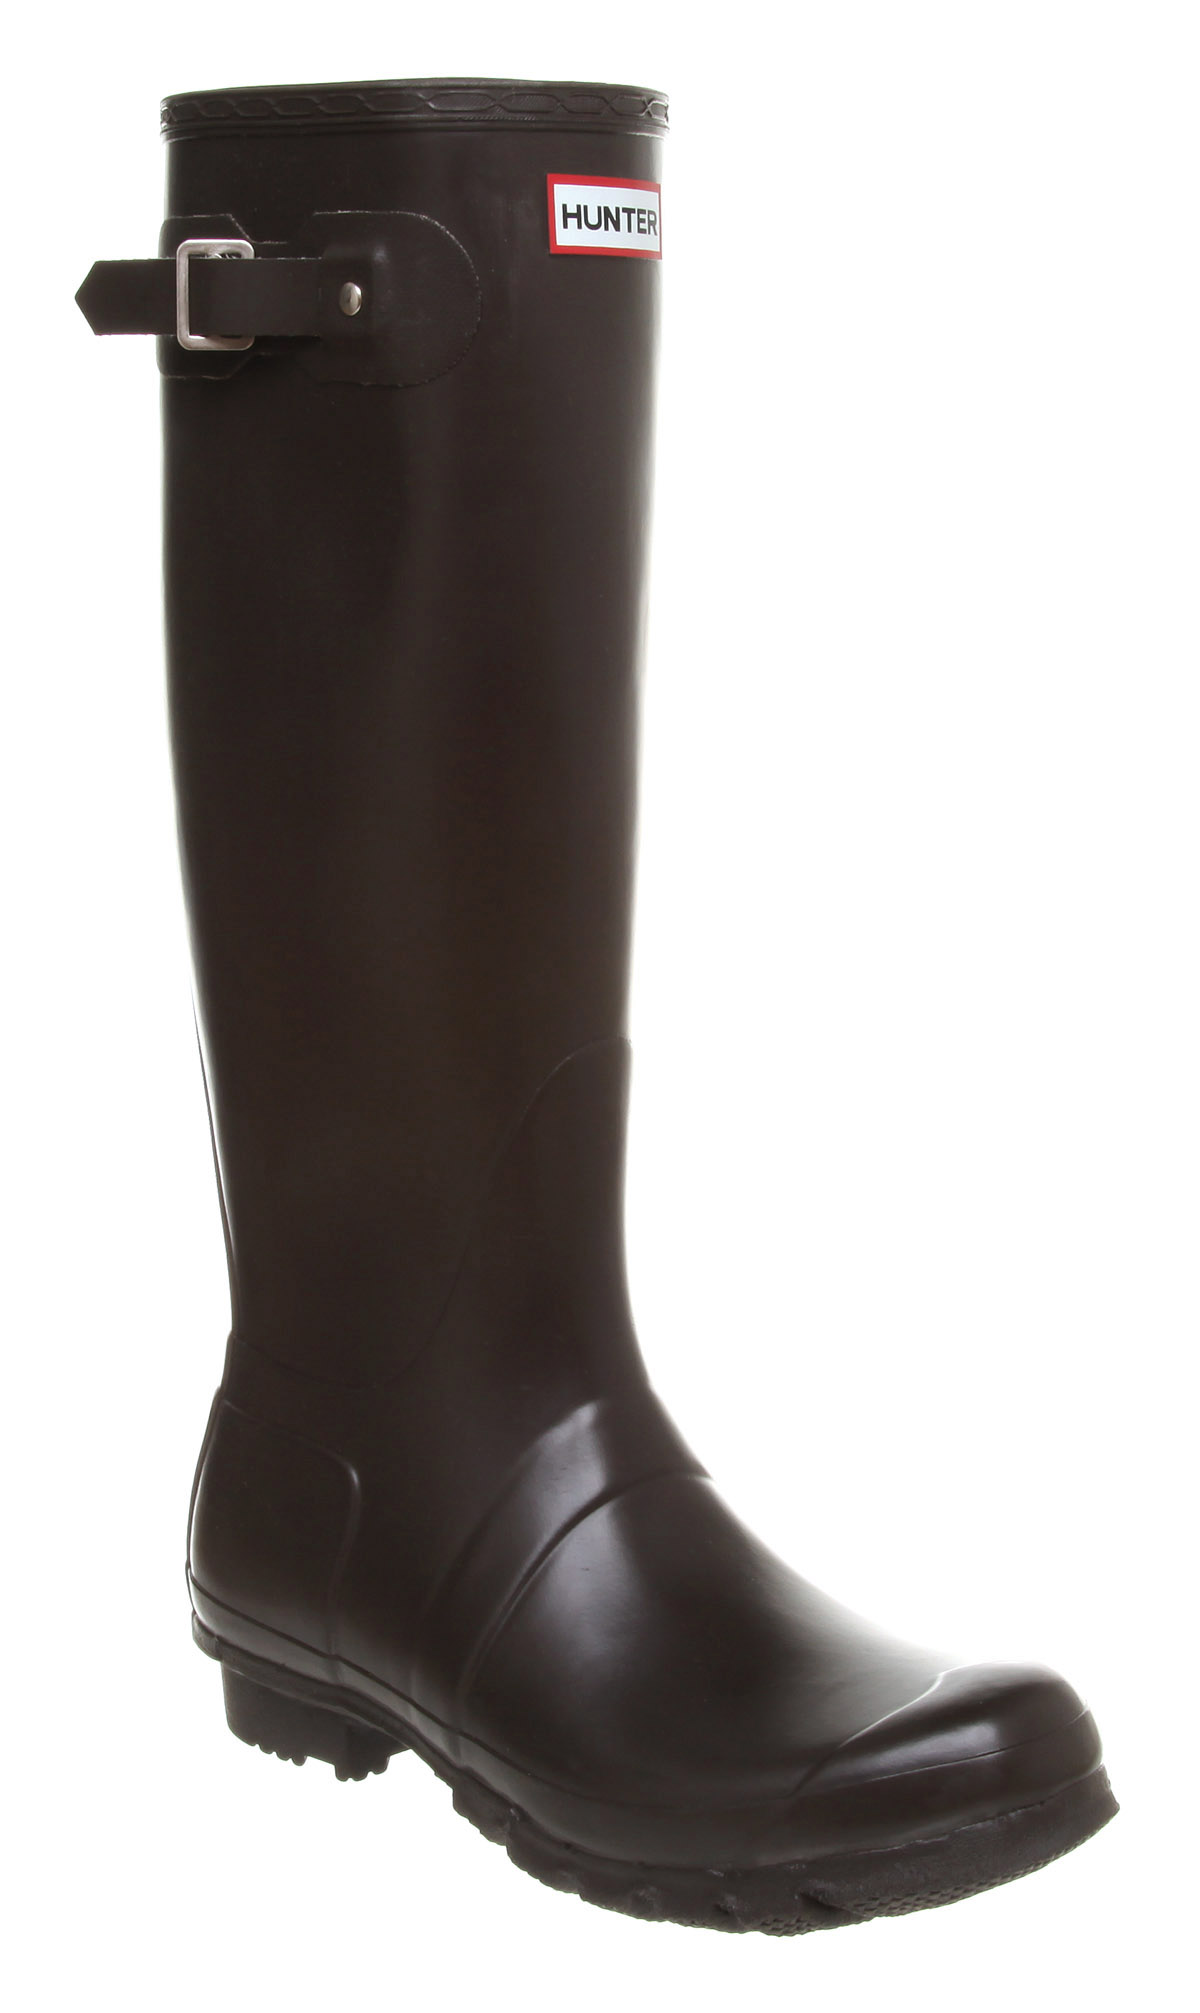 Mens Hunter Original Welly Choc Rubber Boots | eBay